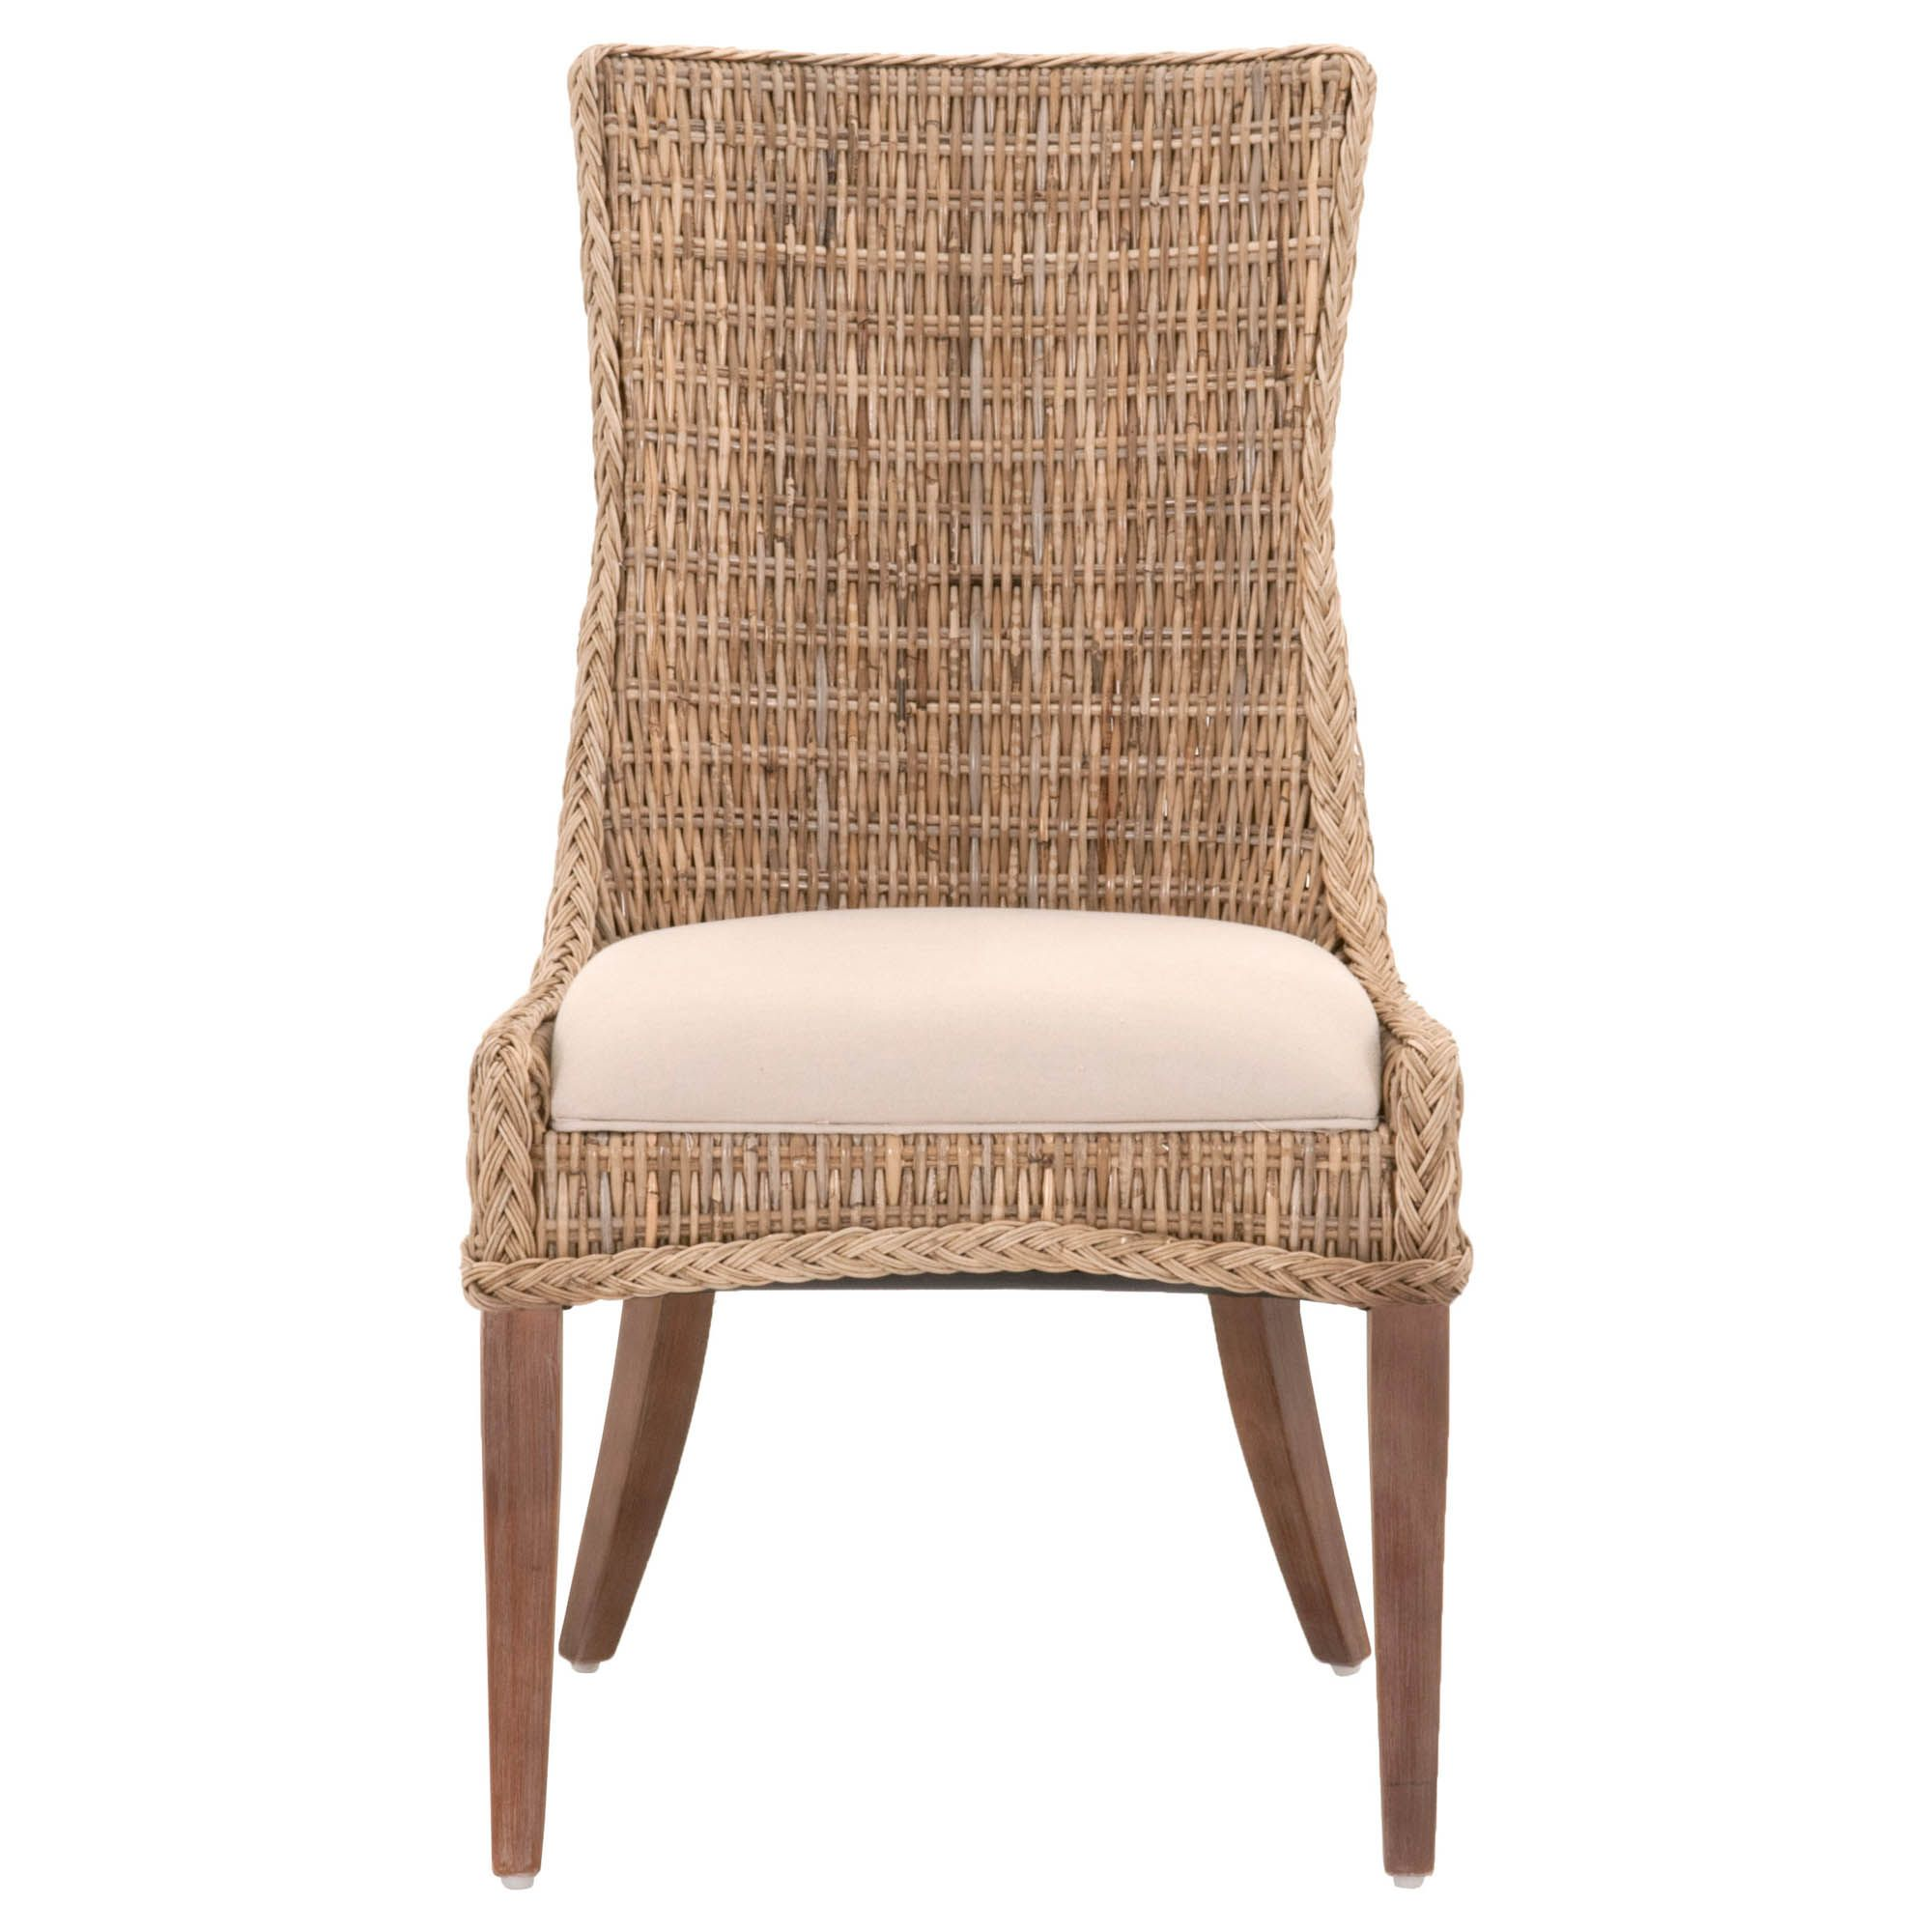 Greco Dining Chair Gray Kubu In 2020 Wicker Dining Chairs Solid Wood Dining Chairs Dining Chairs